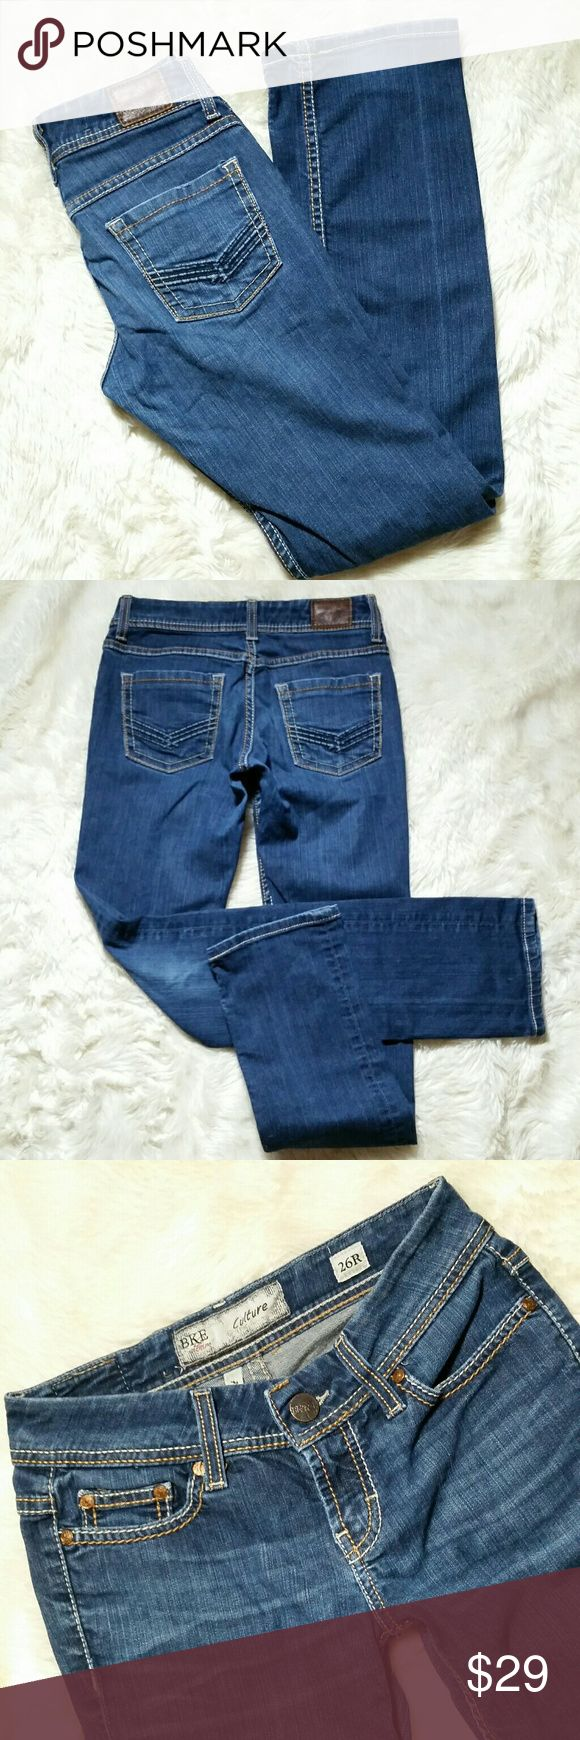 """BKE Straight Leg Culture Buckle Jeans Size 26 BKE Straight Leg Culture Buckle Jeans Size 26. Dark blue wash with embossed and stitched chevron arrow back pockets. Button and zip fly. Soft stretch denim made up of a tri blend of 92% cotton, 7% polyester & 1% spandex.  Preowned in good condition with no rips, holes, tears or stains. Hems show very minor distressing and fading.   Waist 14"""" Rise 7.5"""" Inseam 31"""" Leg Opening 7"""" BKE Jeans Straight Leg"""